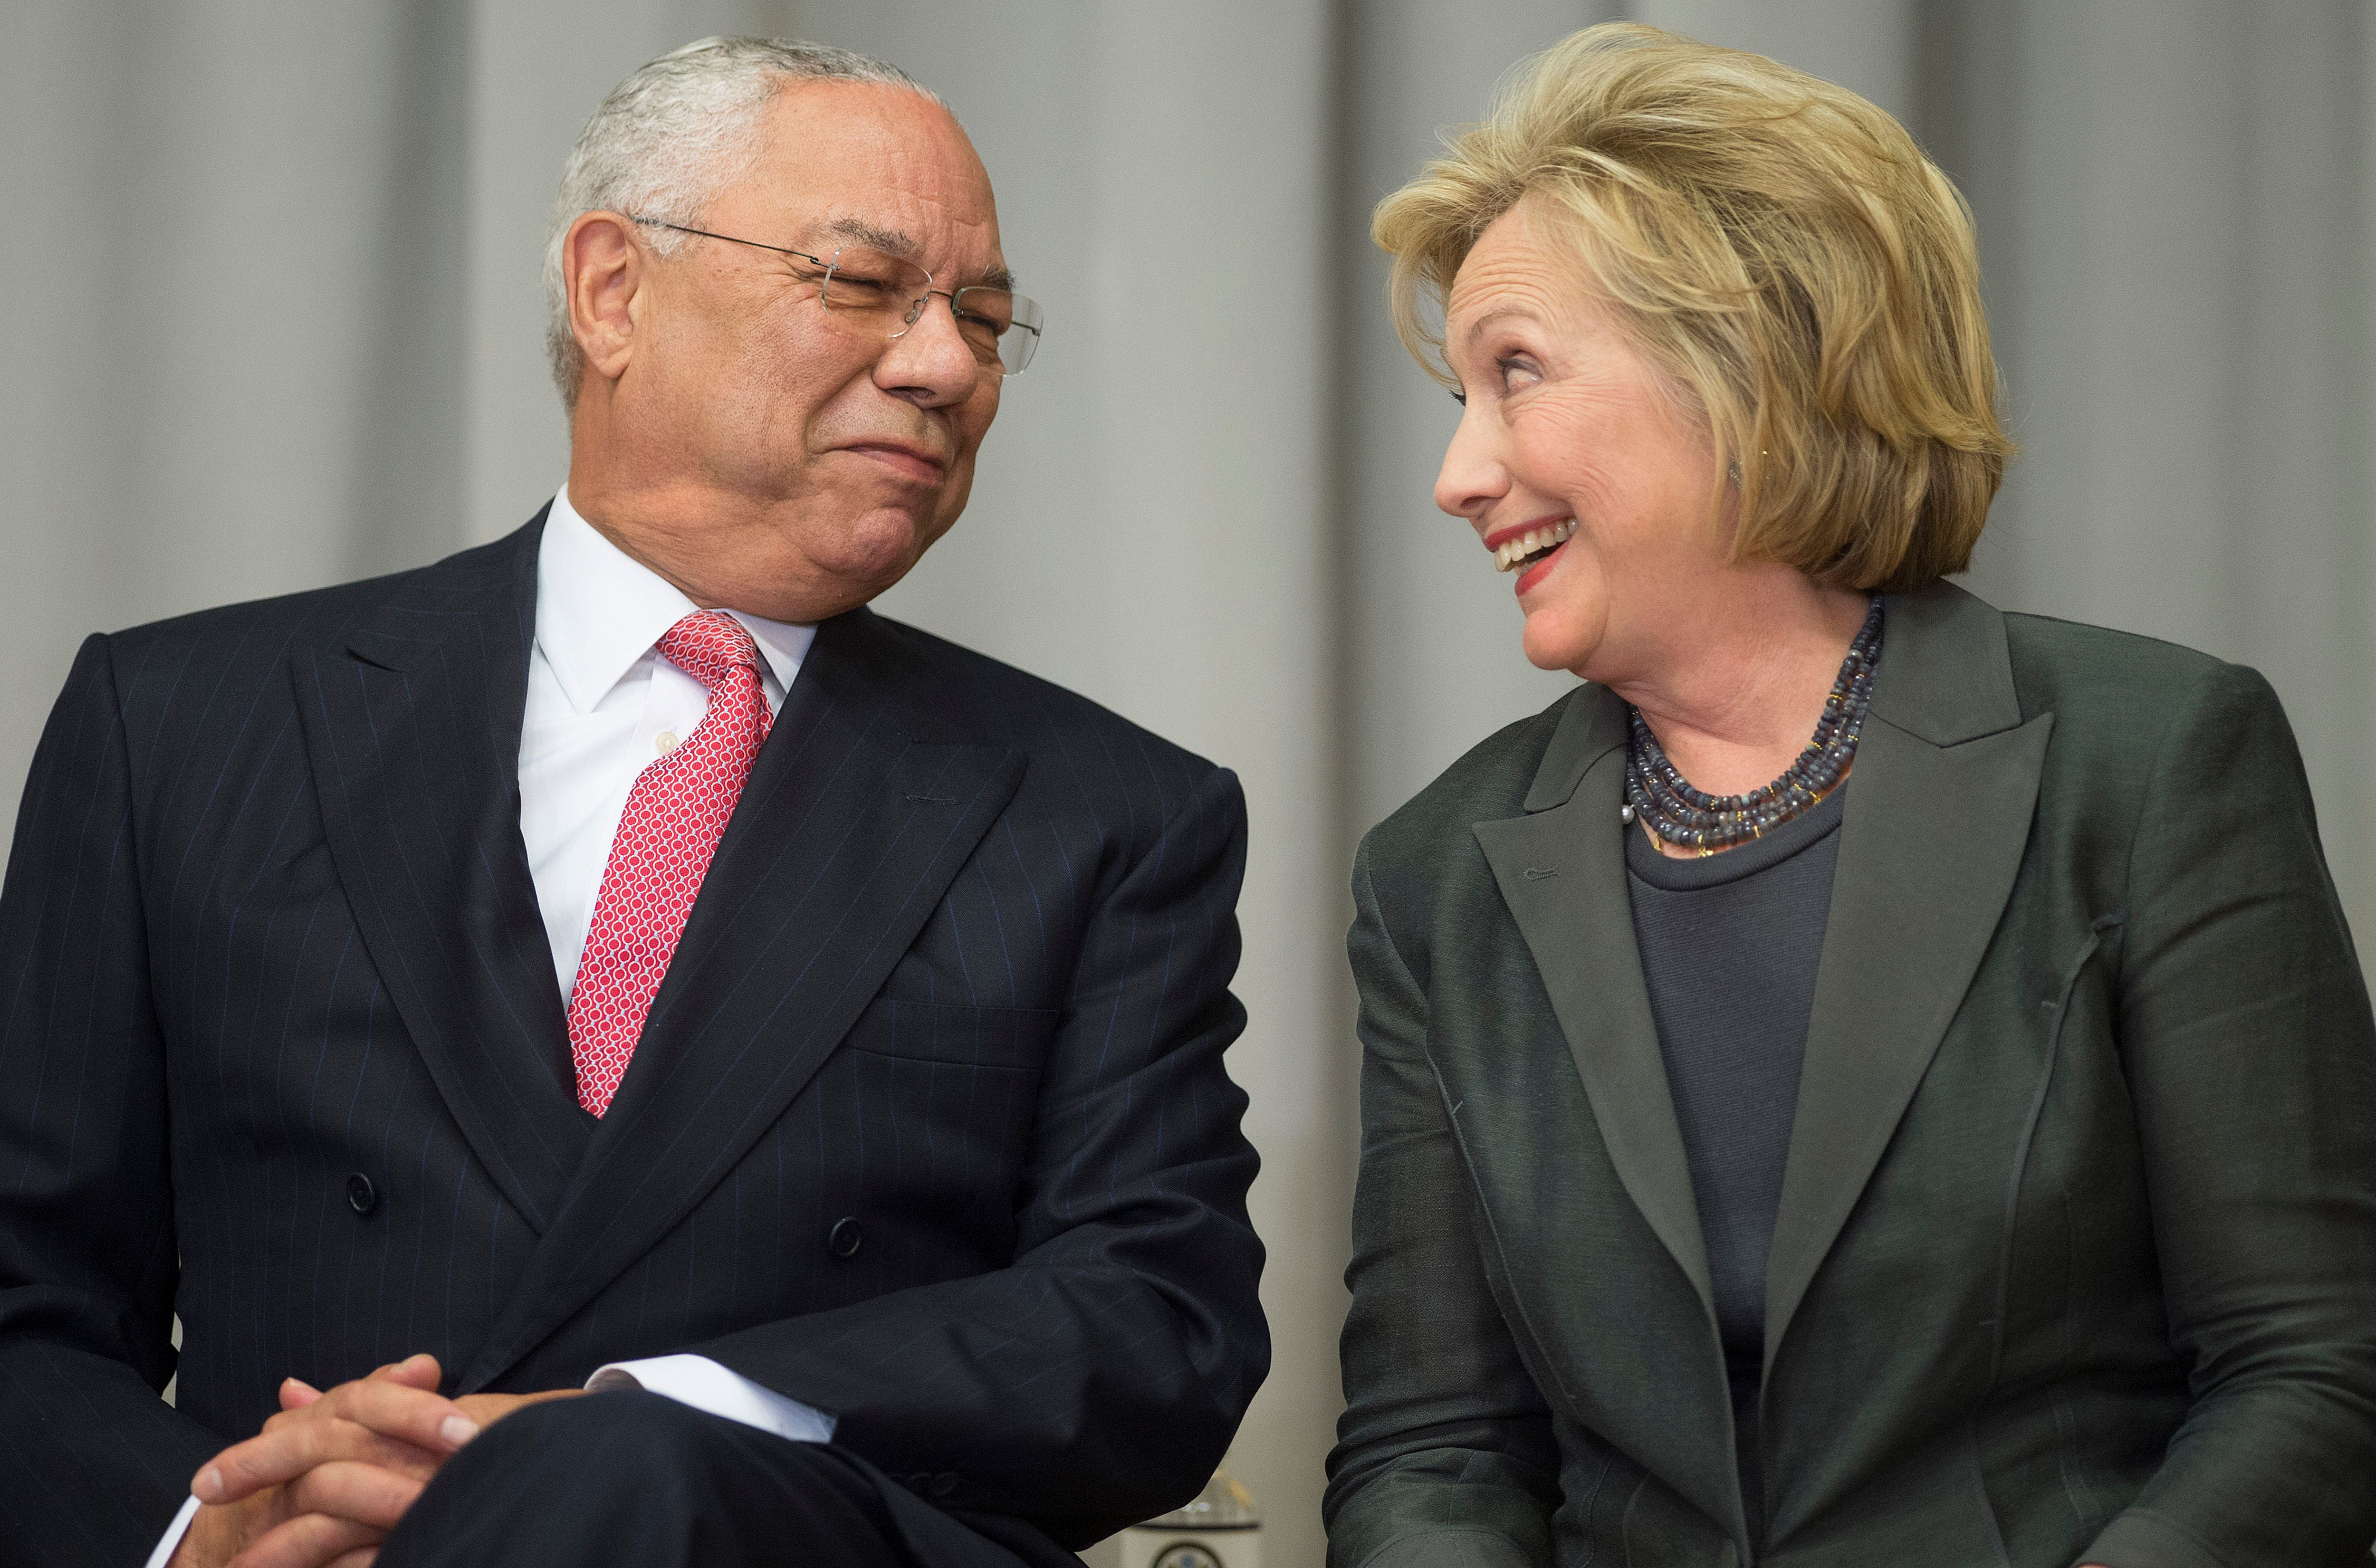 Former US Secretaries of State Colin Powell (L) and Hillary Clinton  speak during a ceremony to break ground on the US Diplomacy Center at the US State Department in Washington, DC, September 3, 2014.                  AFP PHOTO / Jim WATSON / AFP / JIM WATSON        (Photo credit should read JIM WATSON/AFP/Getty Images)